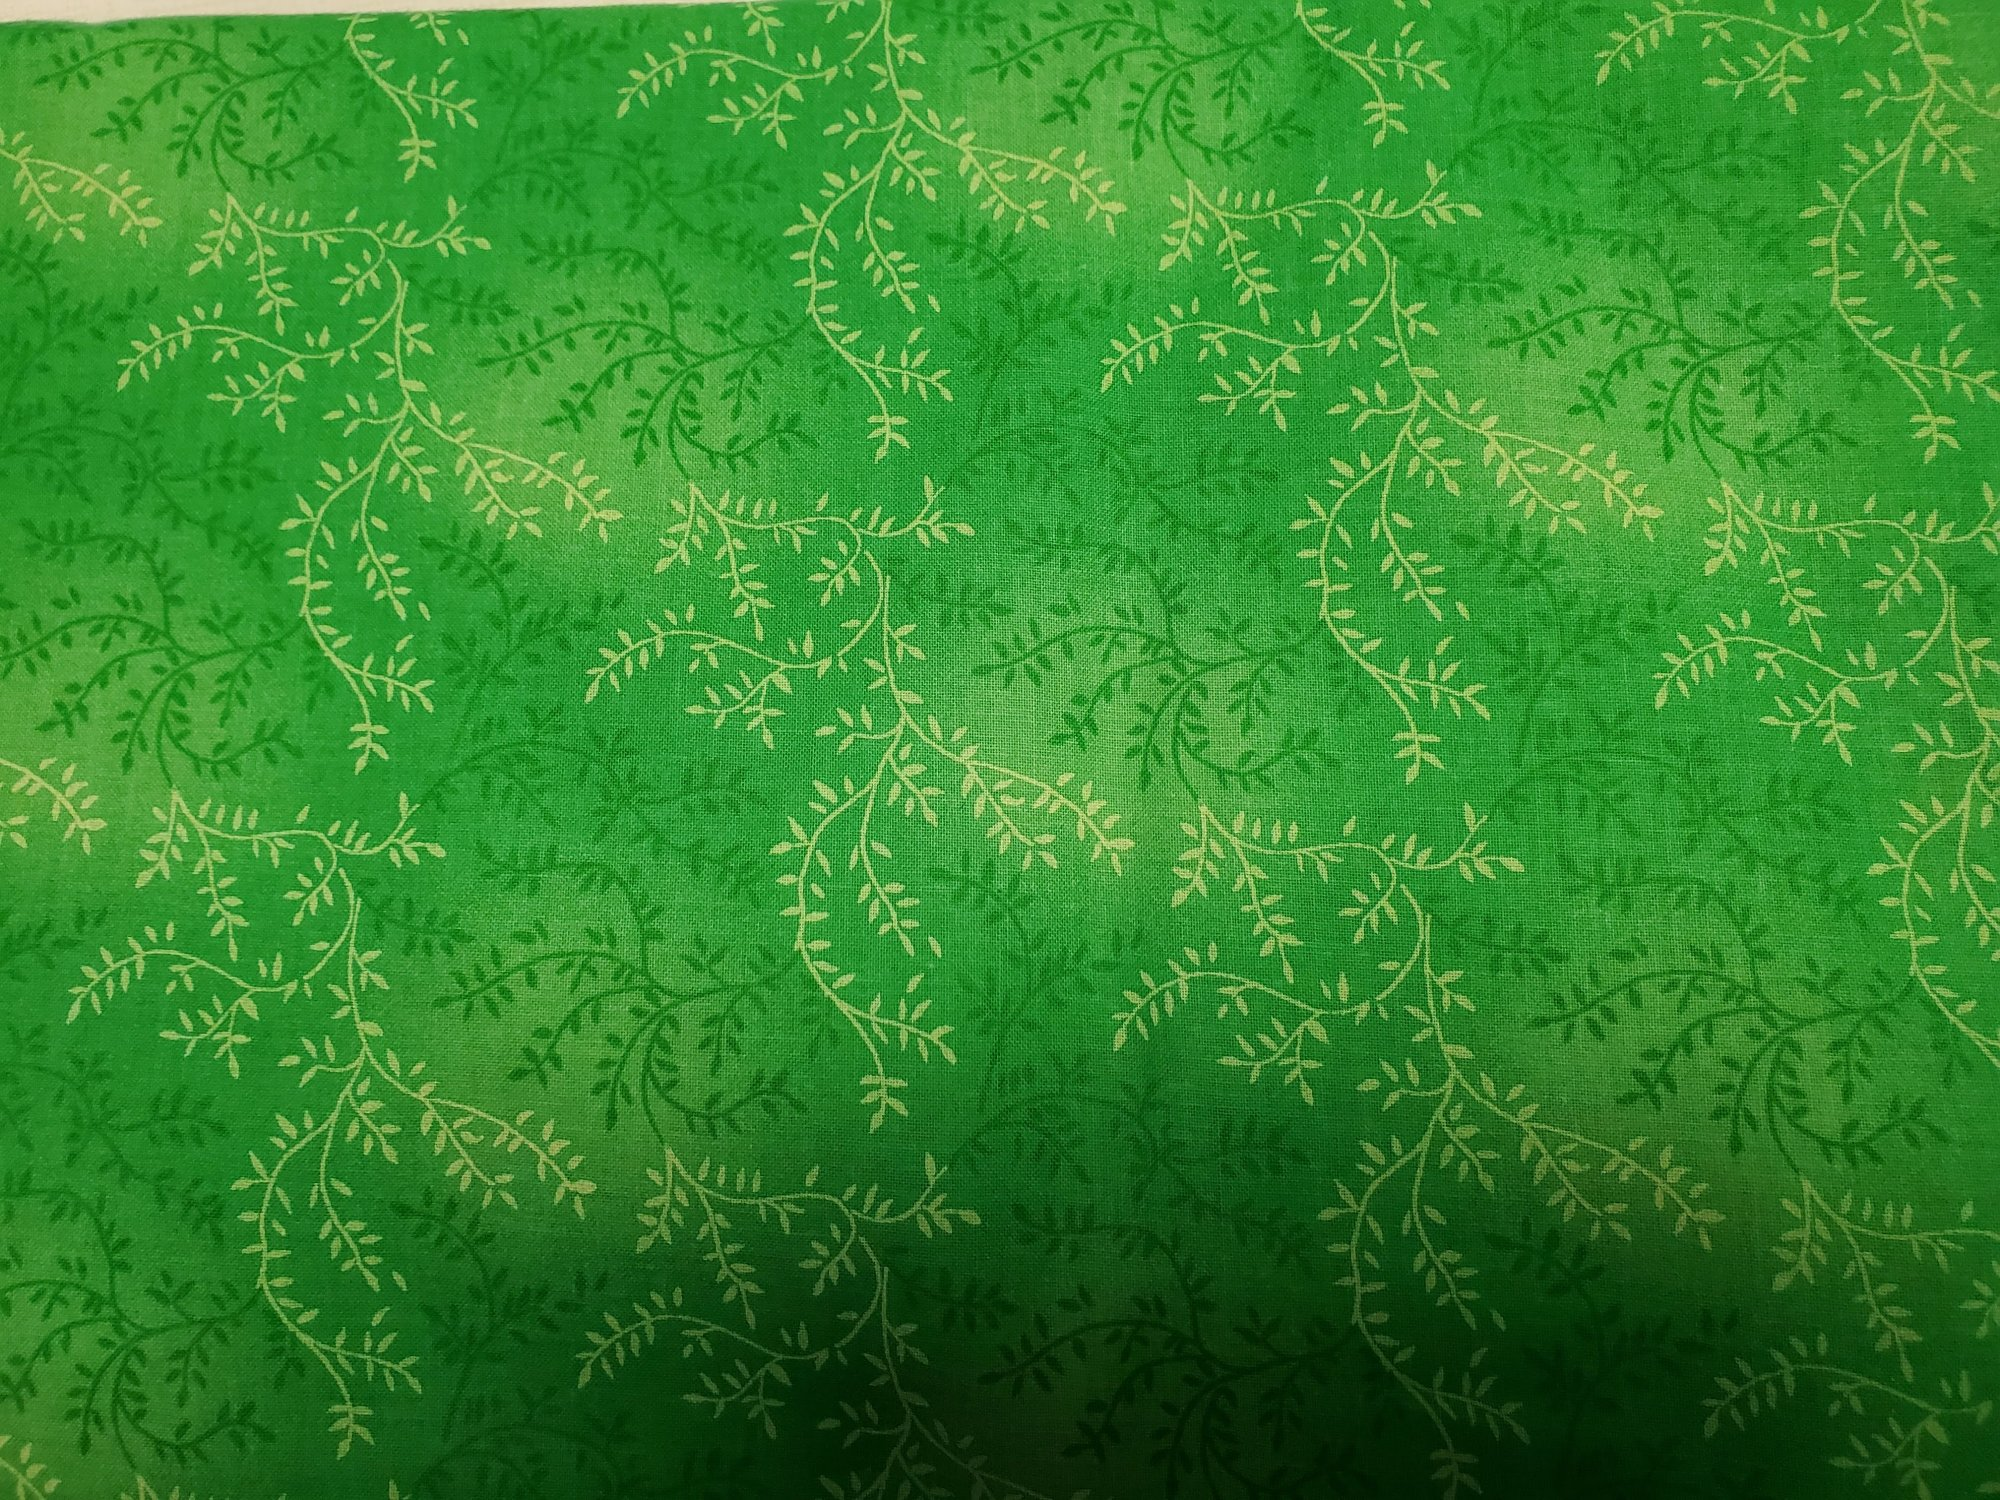 3 Yard Backing Piece: 108 Wide Kelly Green Variegated Branches in a single 3 yard piece